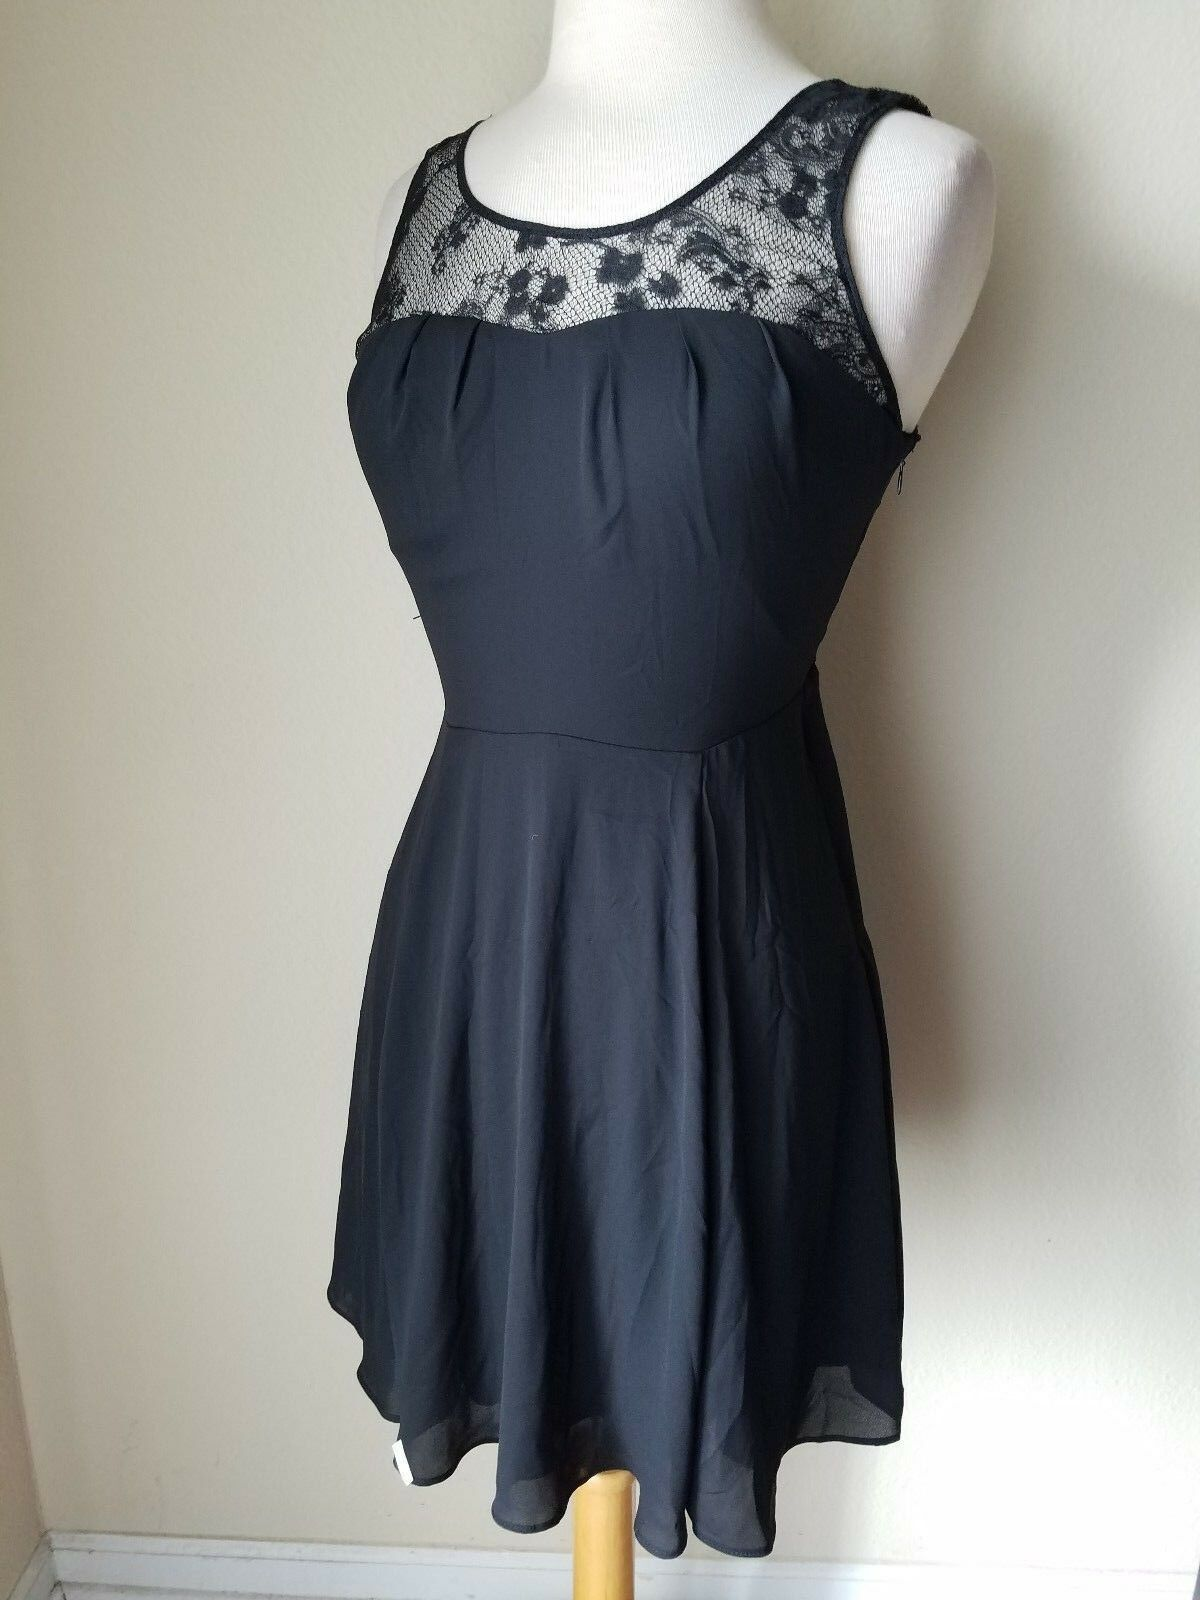 NWT Express Women's Cocktail Dress Black Lace Top Sleeveless Mini Empire Waist 4